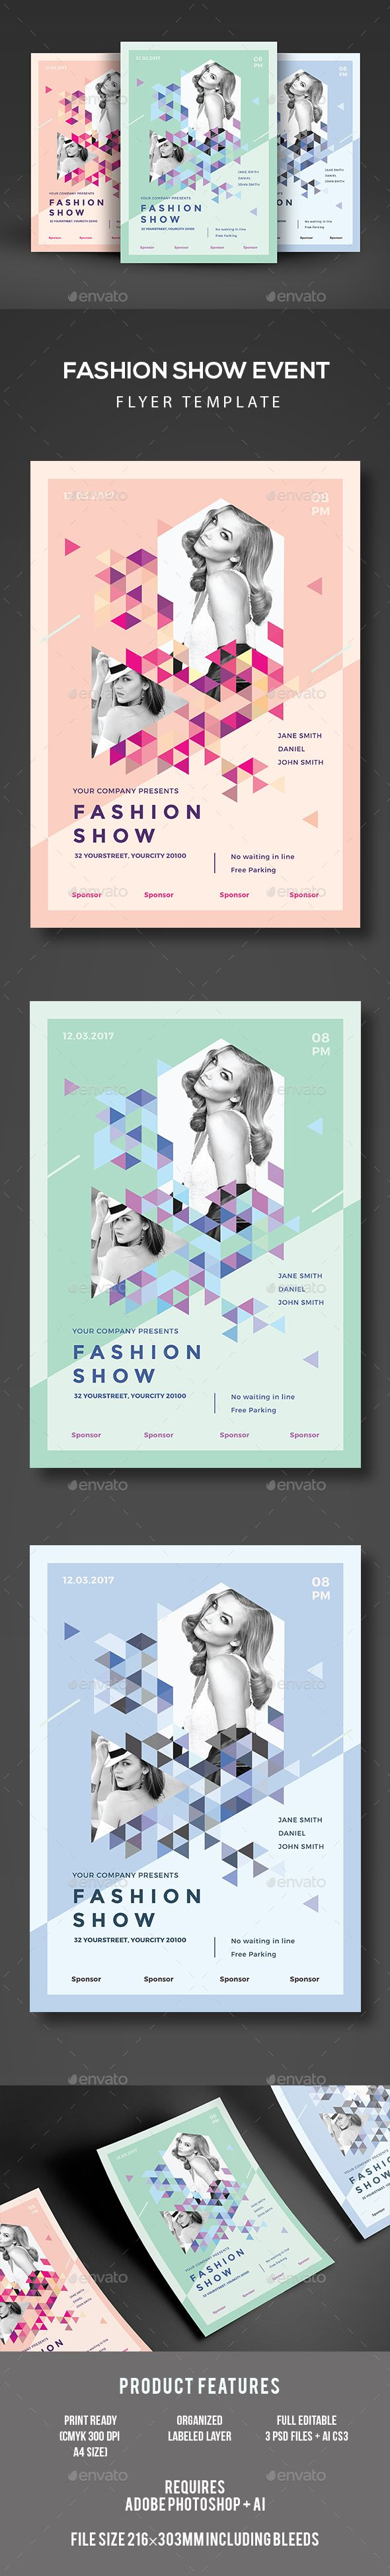 Fashion Show Flyer Template PSD, AI Illustrator. Download here: graphicriver.net...